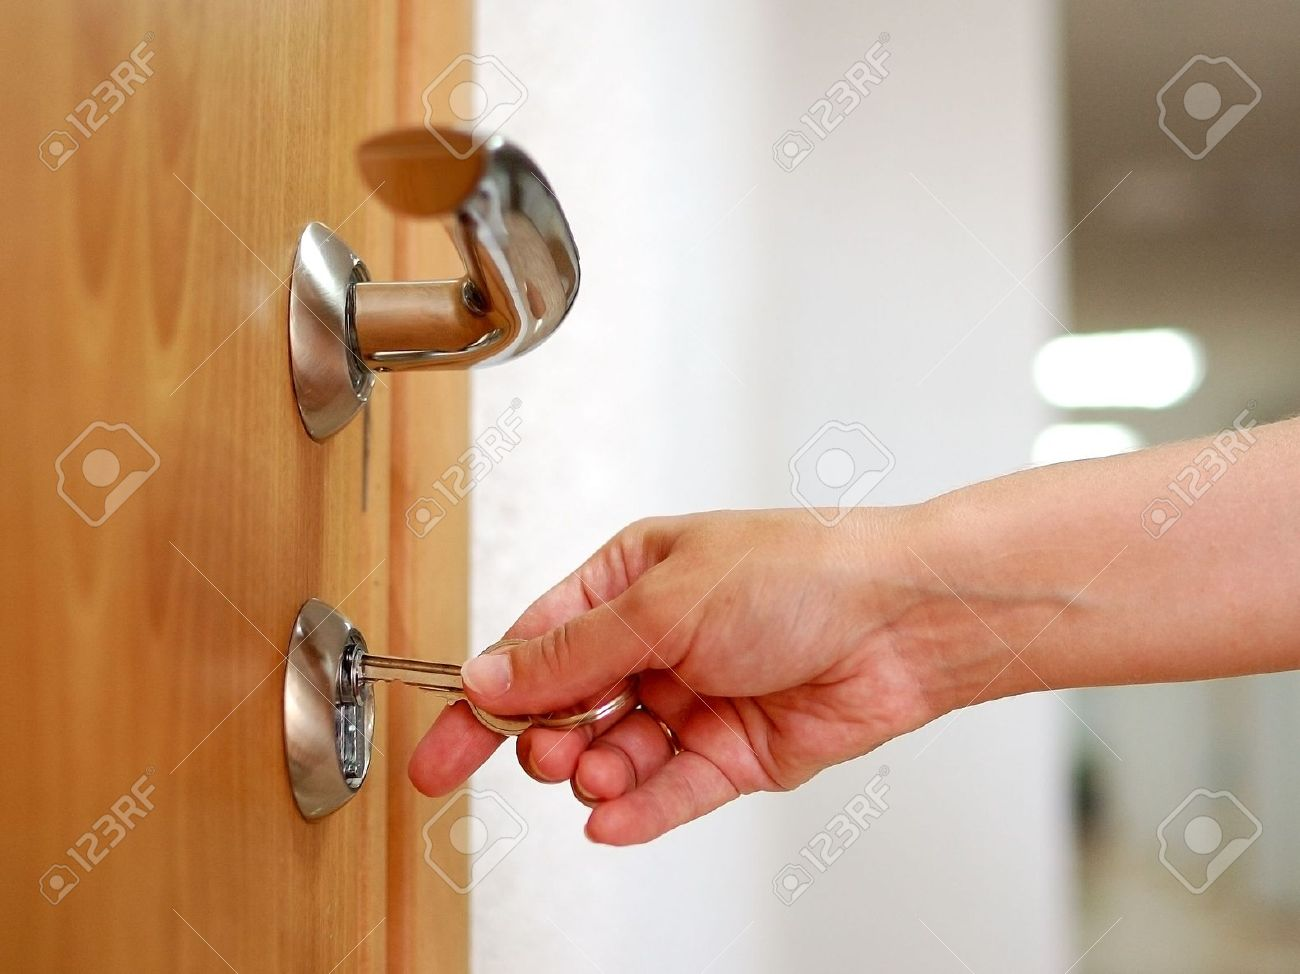 Locking up or unlocking the door with a key in hand Stock Photo - 7673991 & Locking Up Or Unlocking The Door With A Key In Hand Stock Photo ...